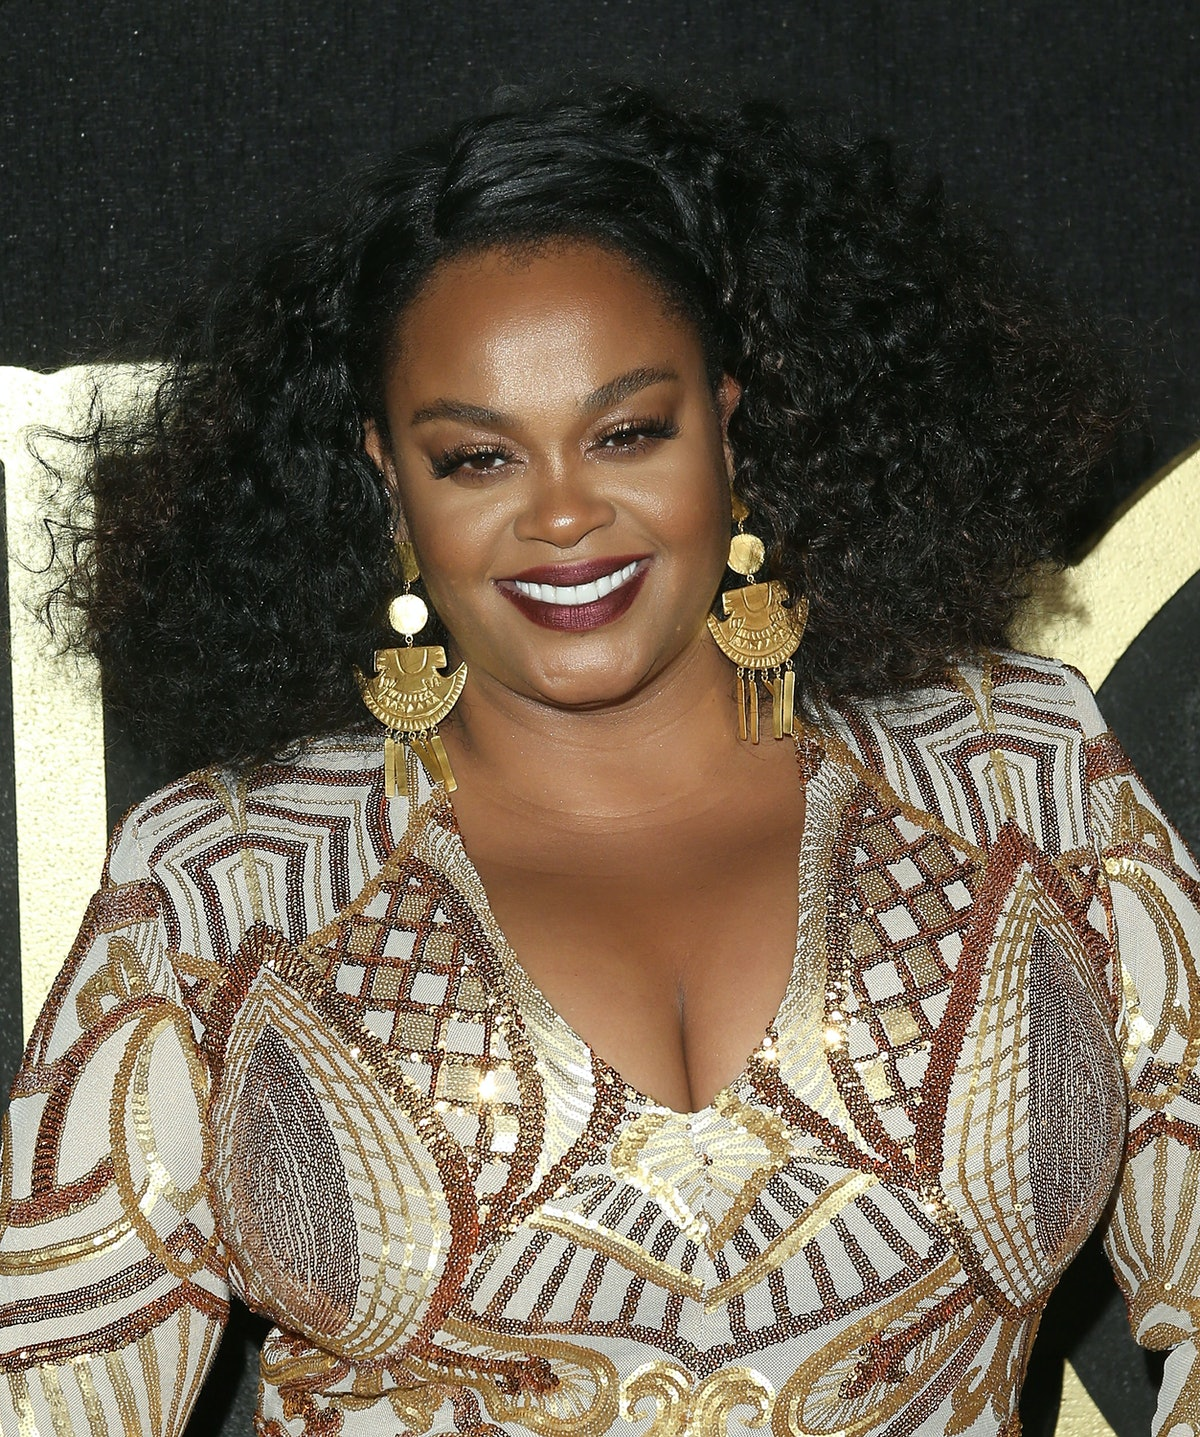 Jill Scott Isn't The First Female Musician To Embrace Her Sexuality & She Won't Be The Last